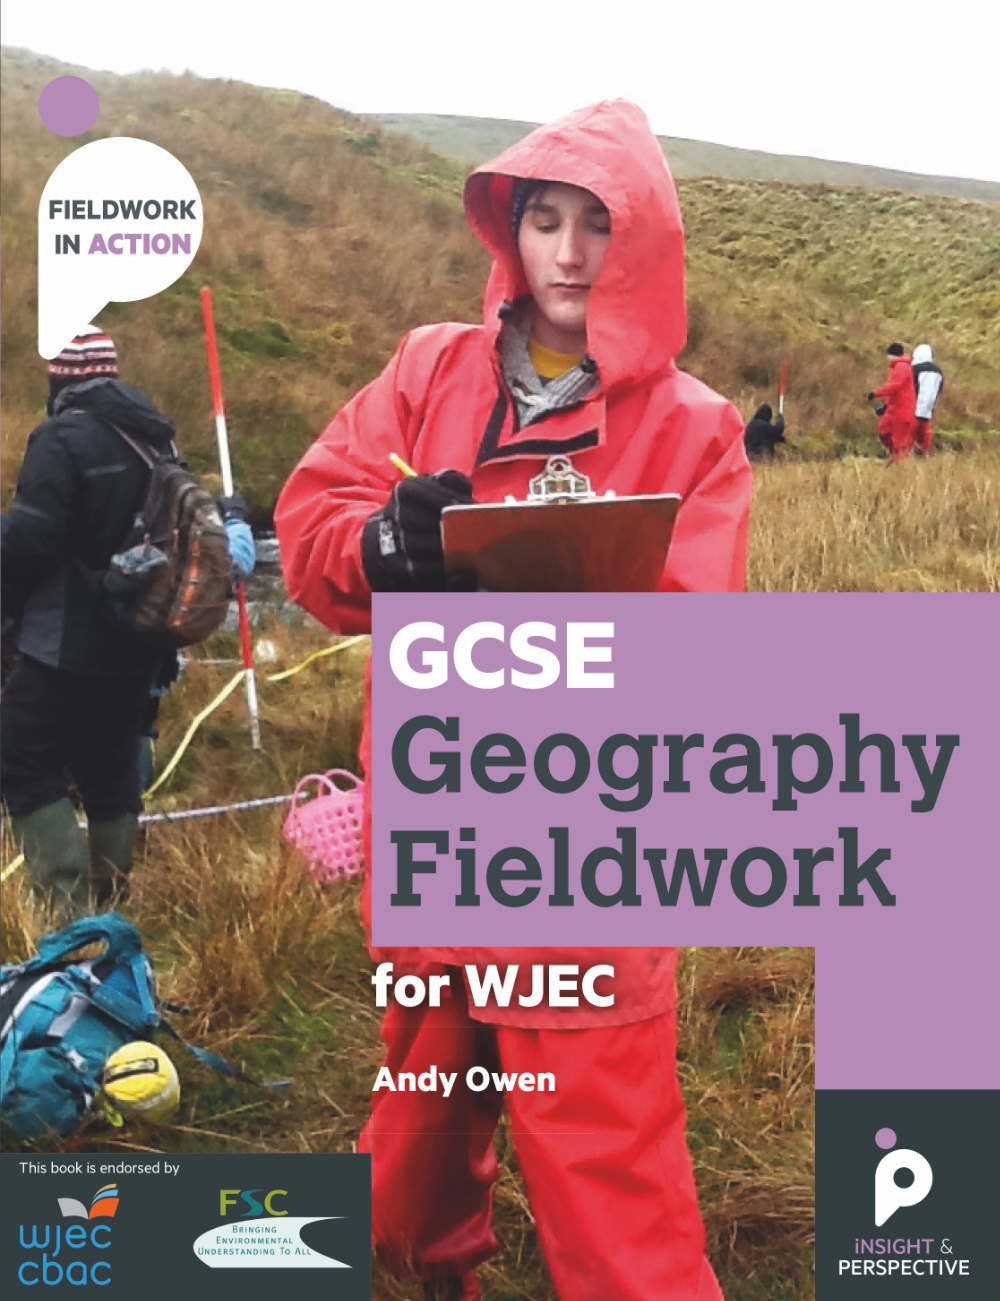 GCSE-Geography-Fieldwork-for-WJEC.jpg